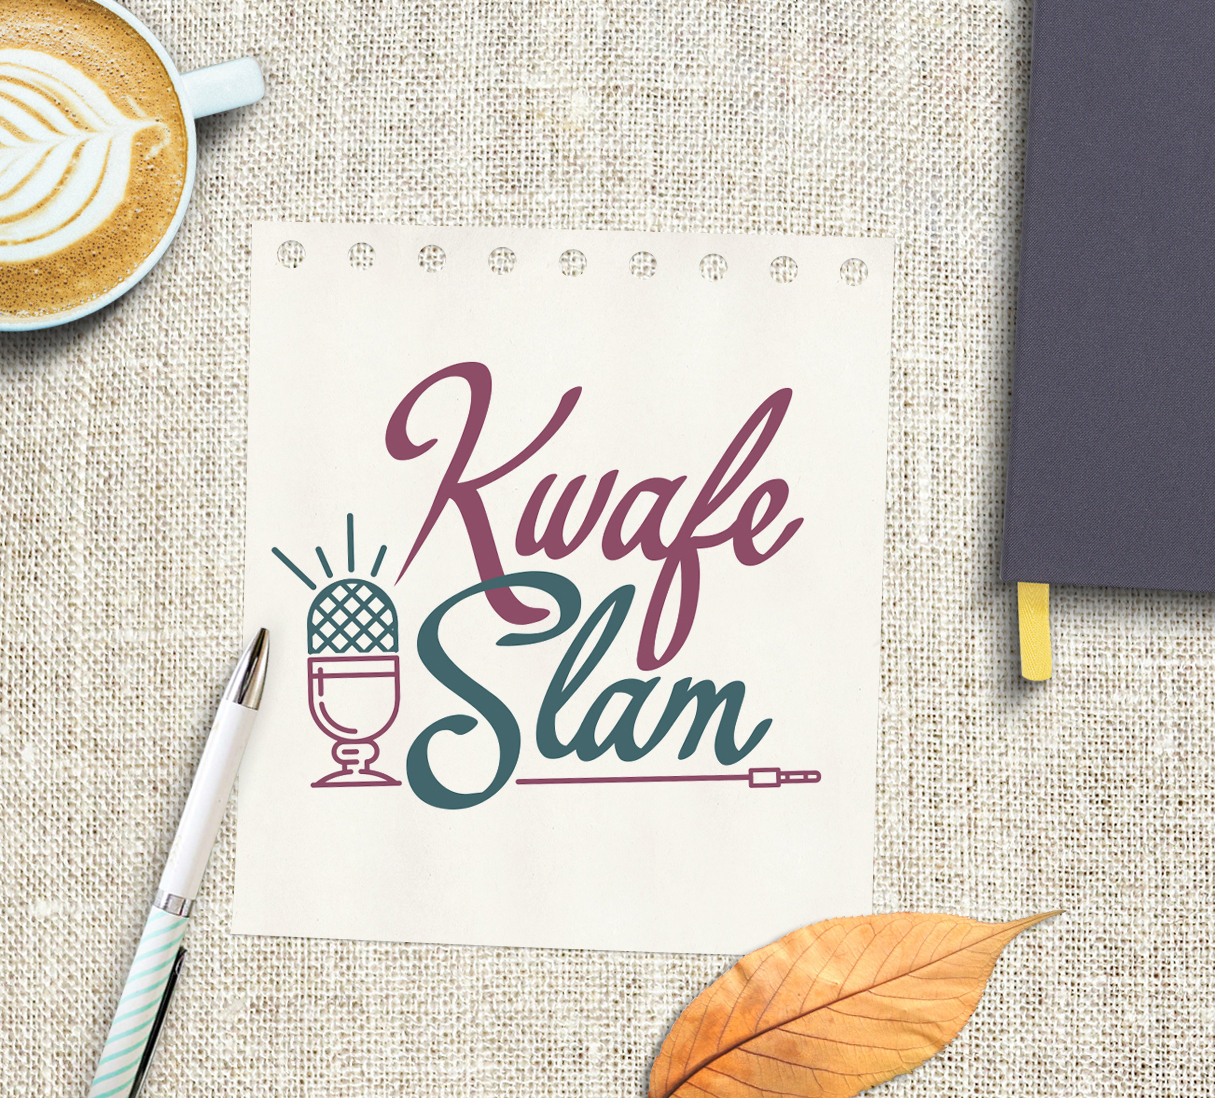 Kwafe Slam